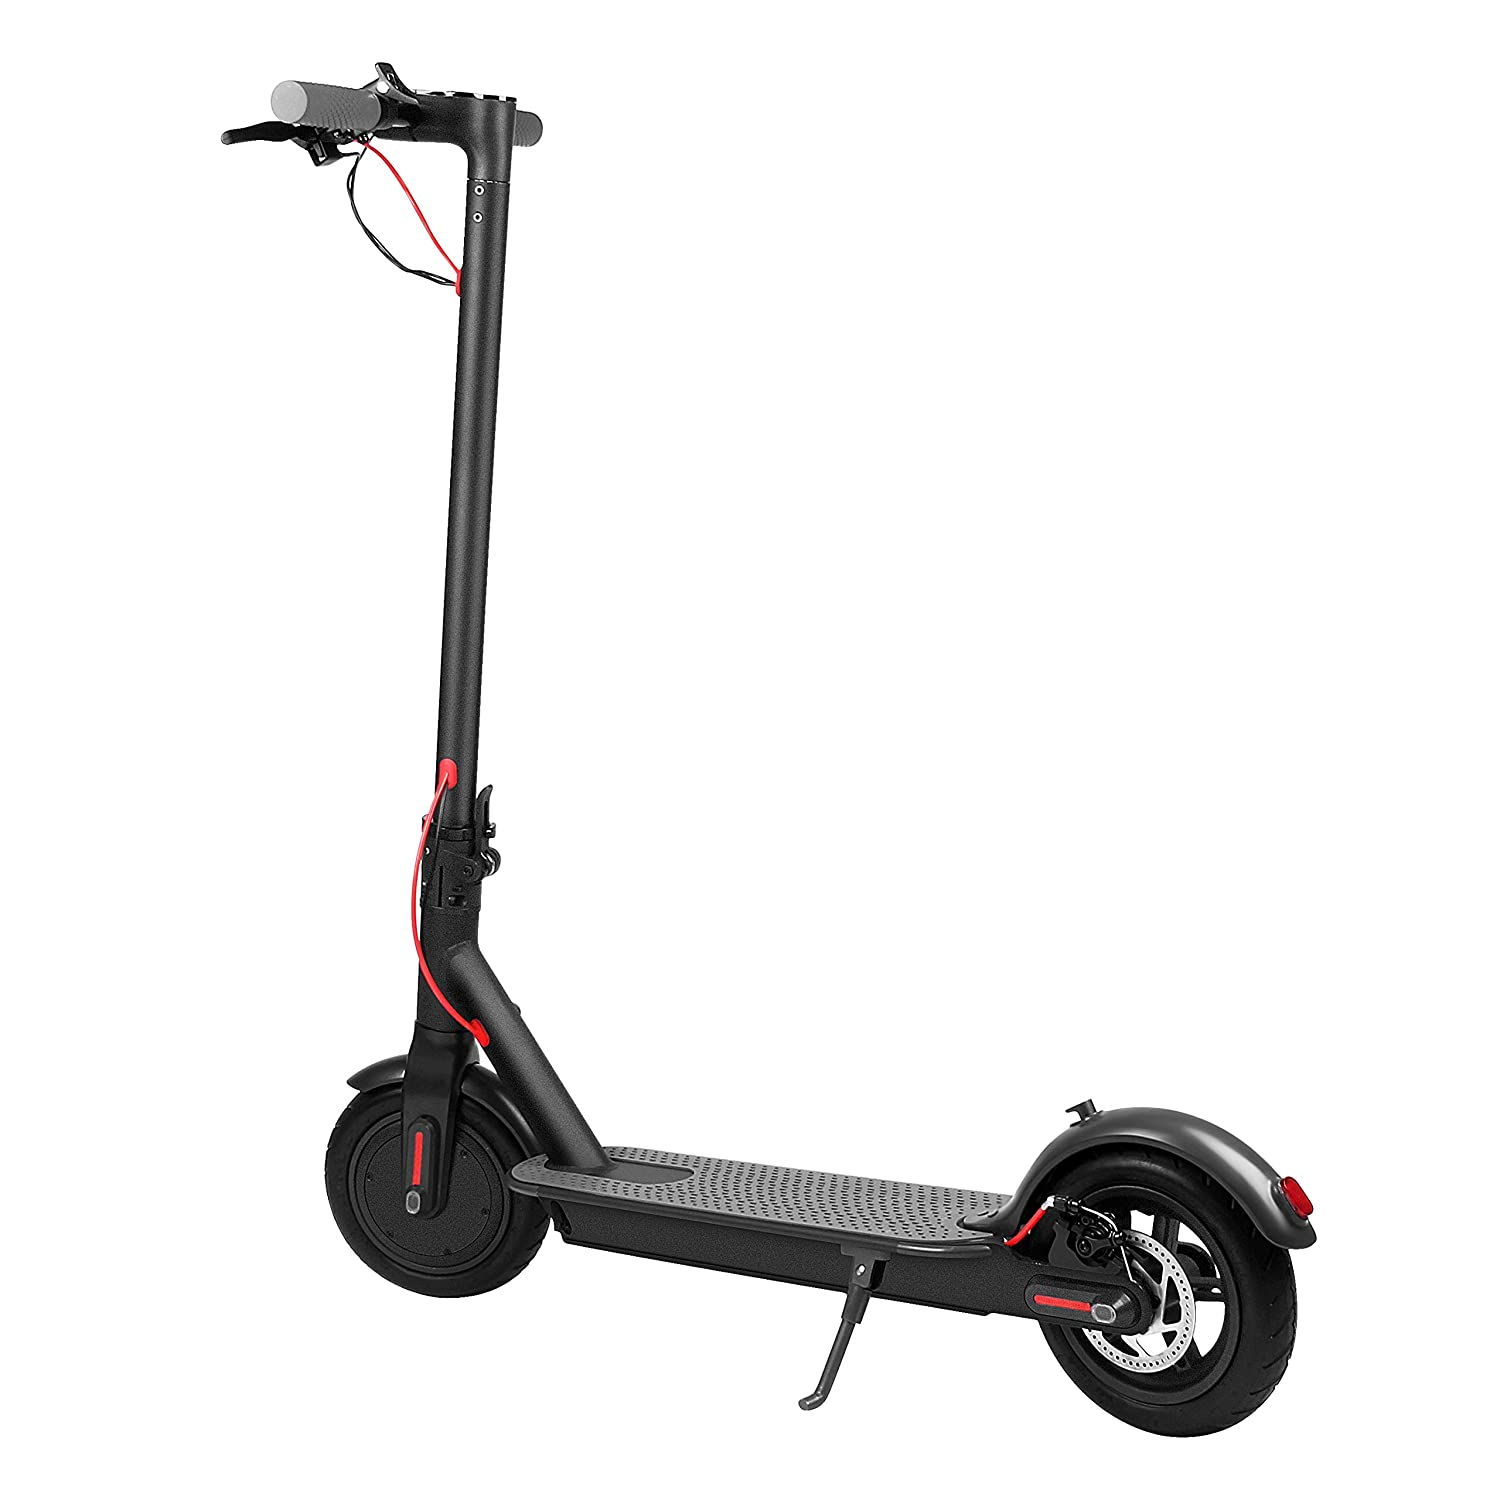 Amazon.com: Sooseder - Patinete eléctrico plegable de 12.4 ...